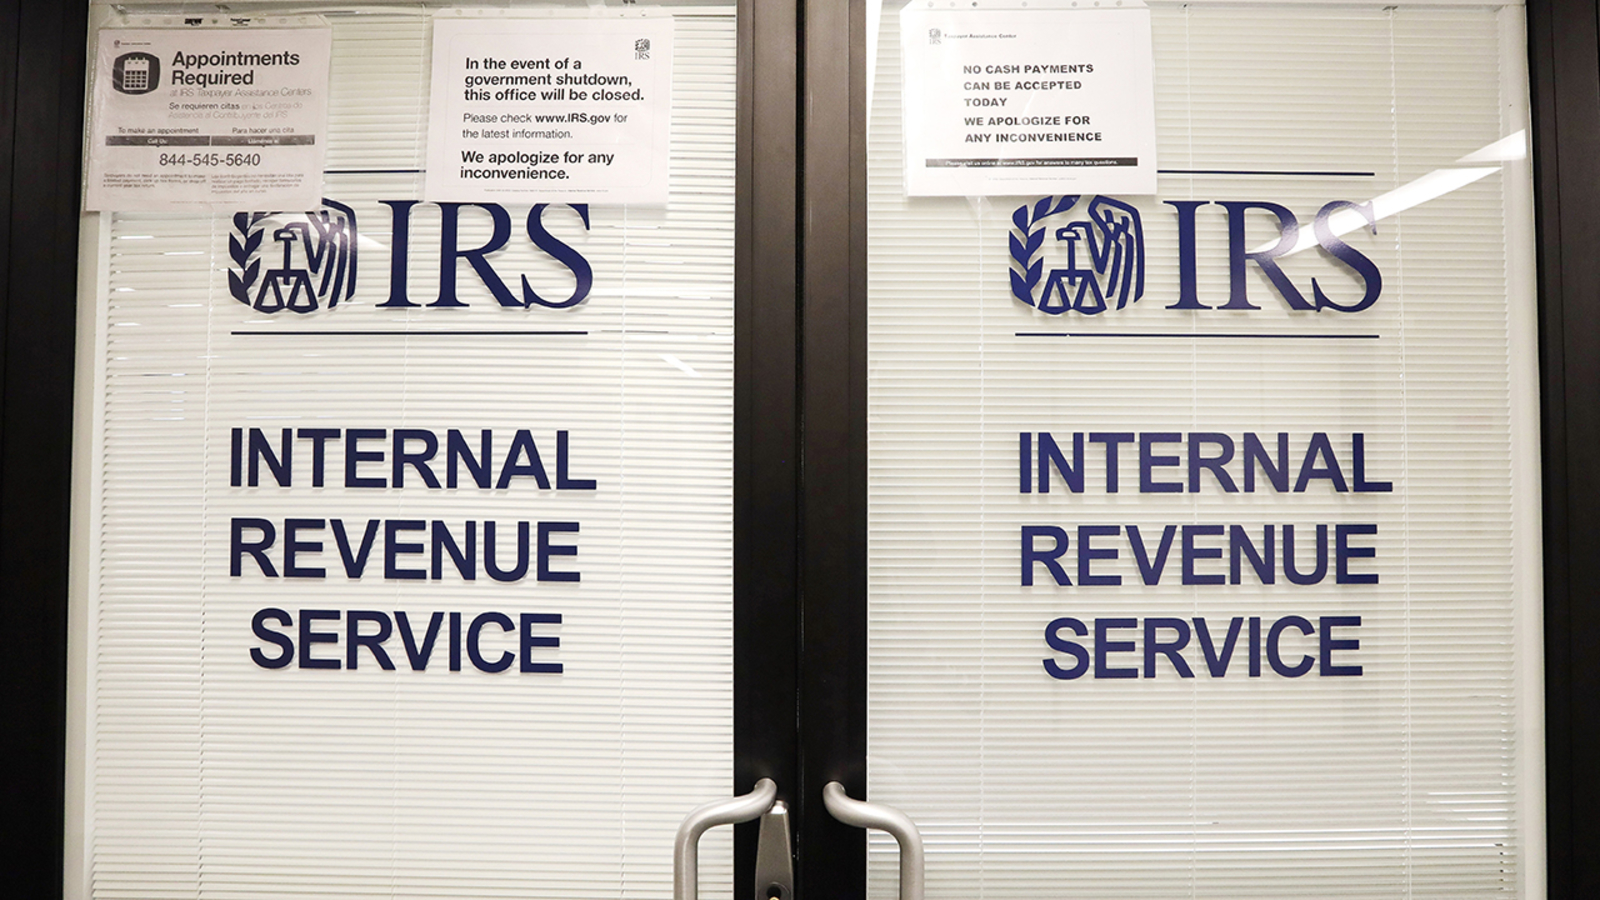 Get my refund: 12 million tax returns trapped in IRS logjam, should be fixed 'by summer'